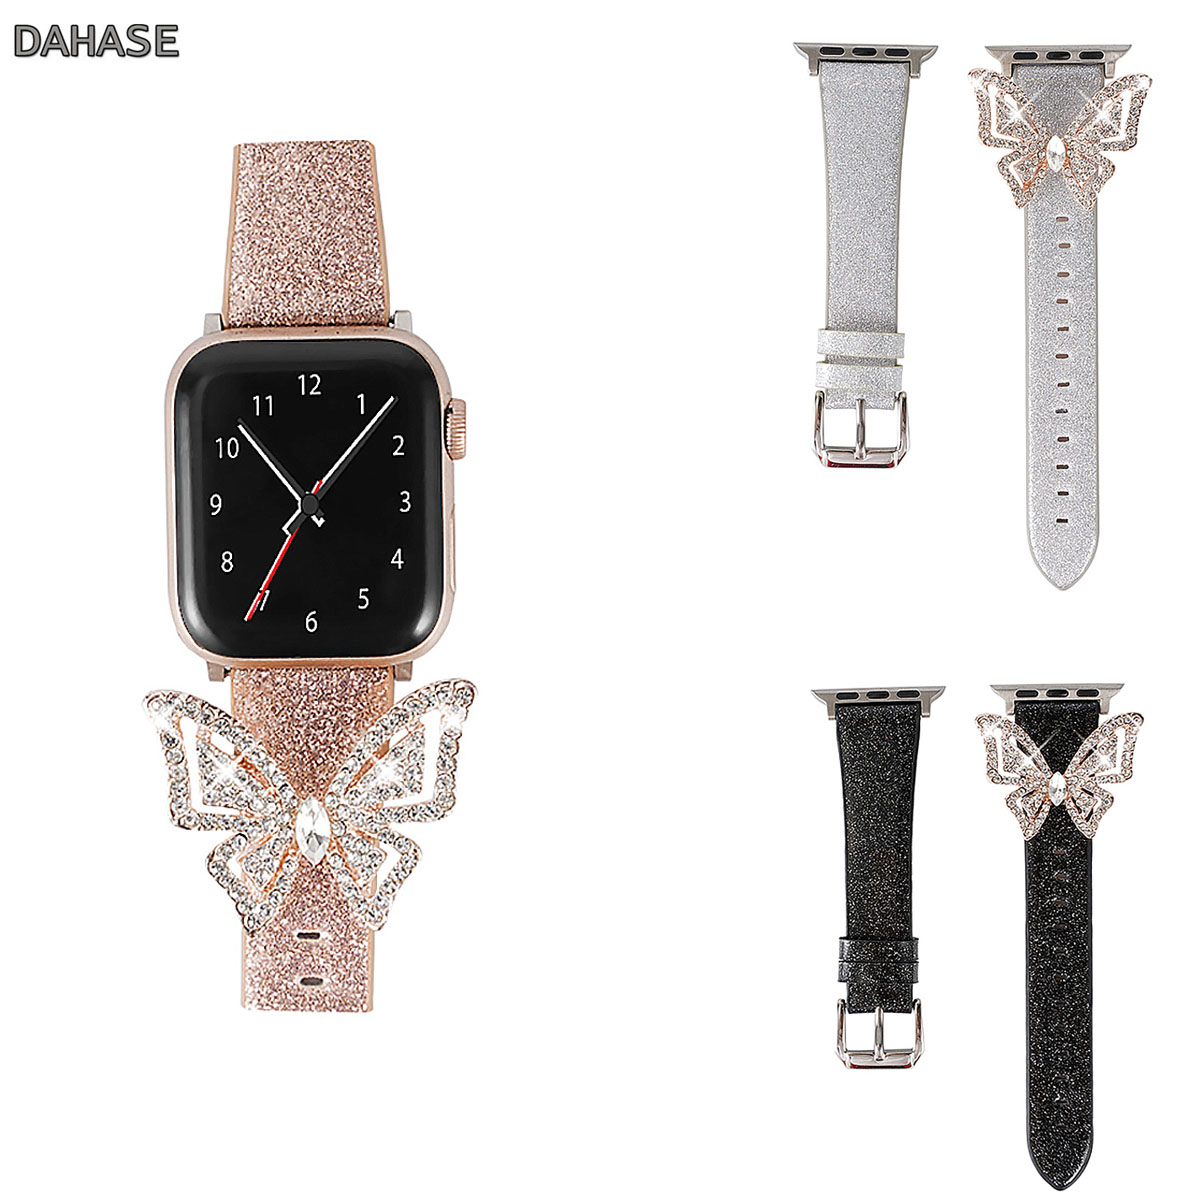 Glitter Butterfly Leather Strap For Apple Watch Band Series 1 2 3 4 5 Women Diamond Bracelet For 38 40 42 44mm IWatch Wristband